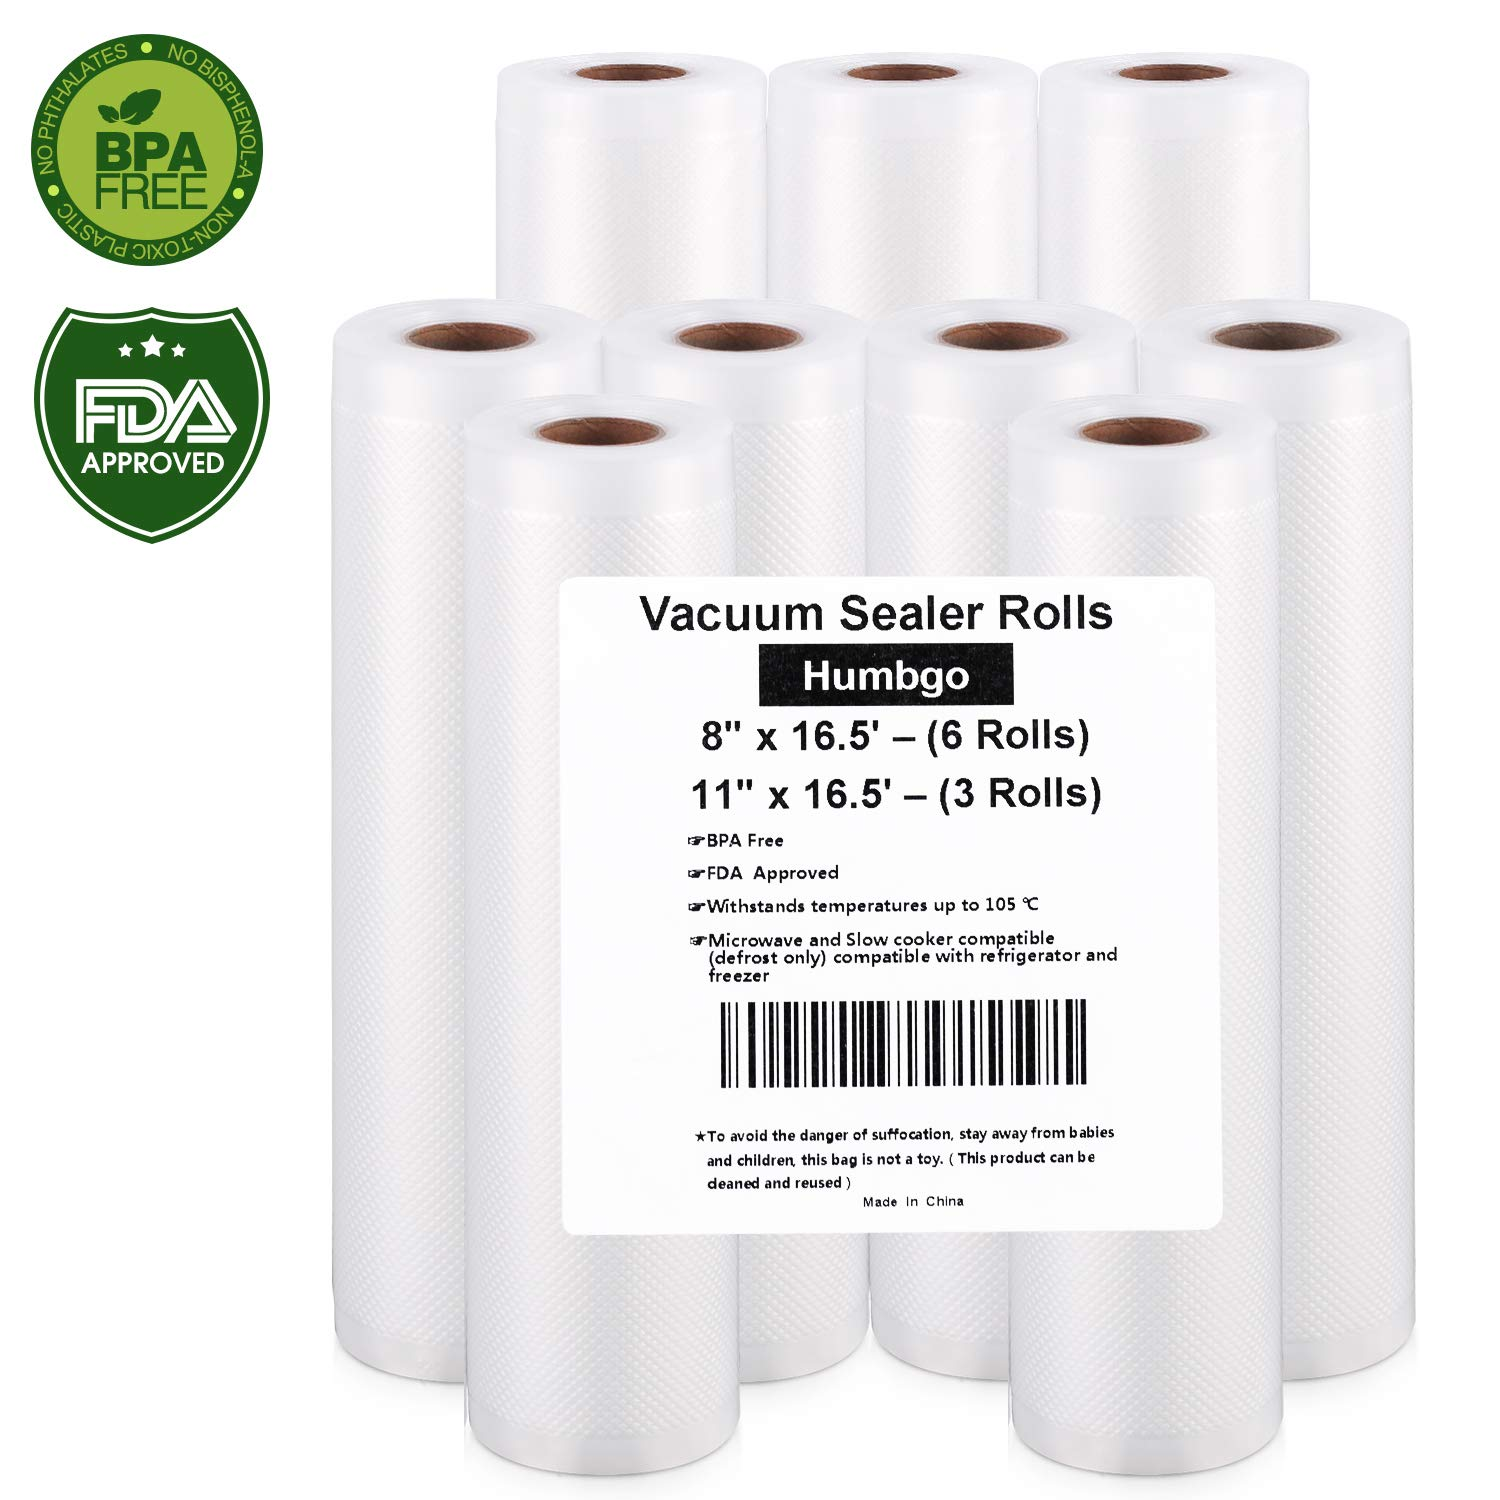 Vacuum Sealer Rolls 3 Pack 8